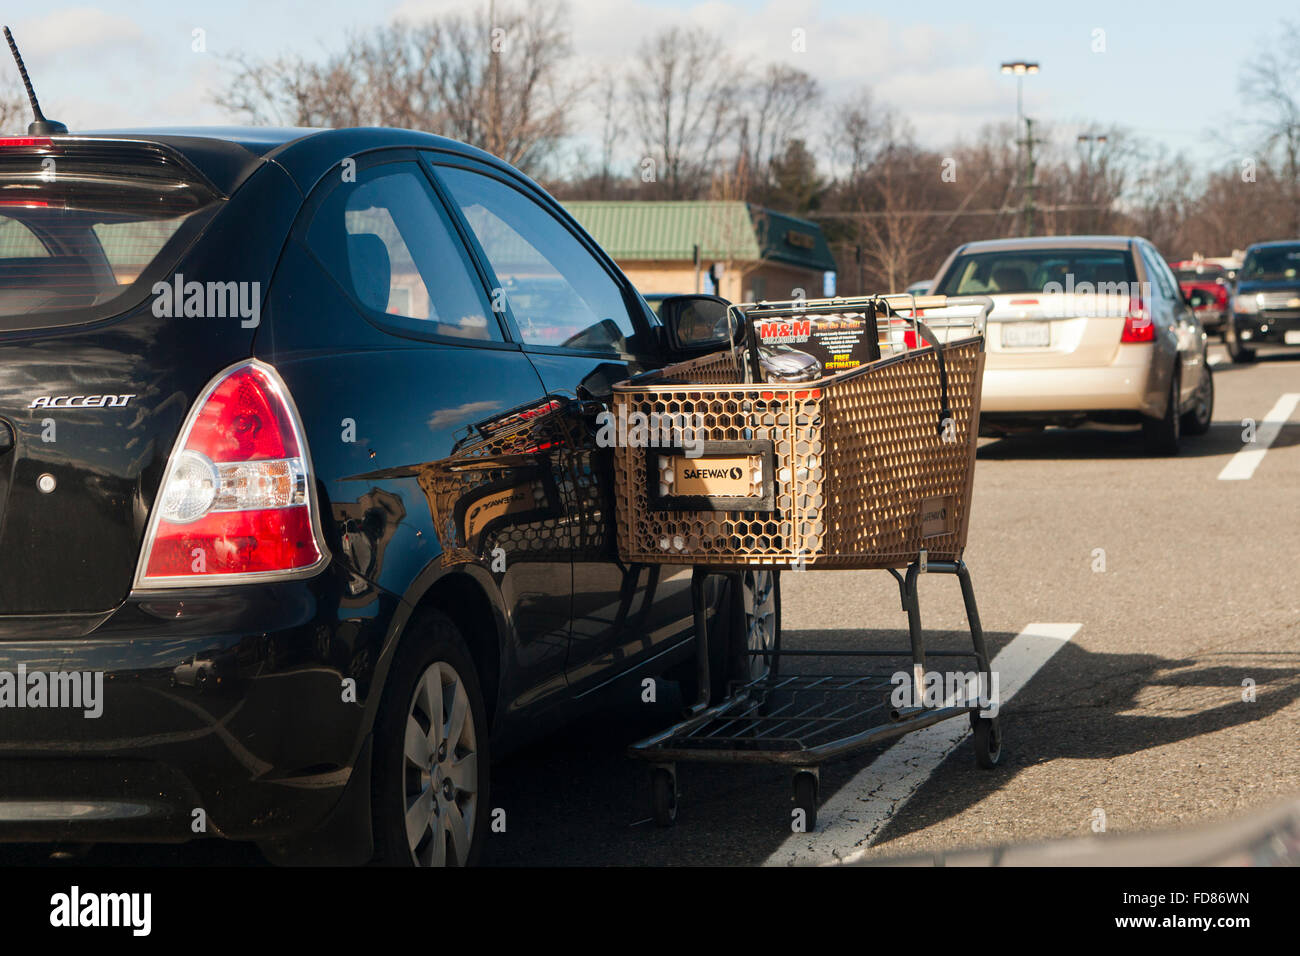 Grocery shopping cart leaning on parked car - USA - Stock Image